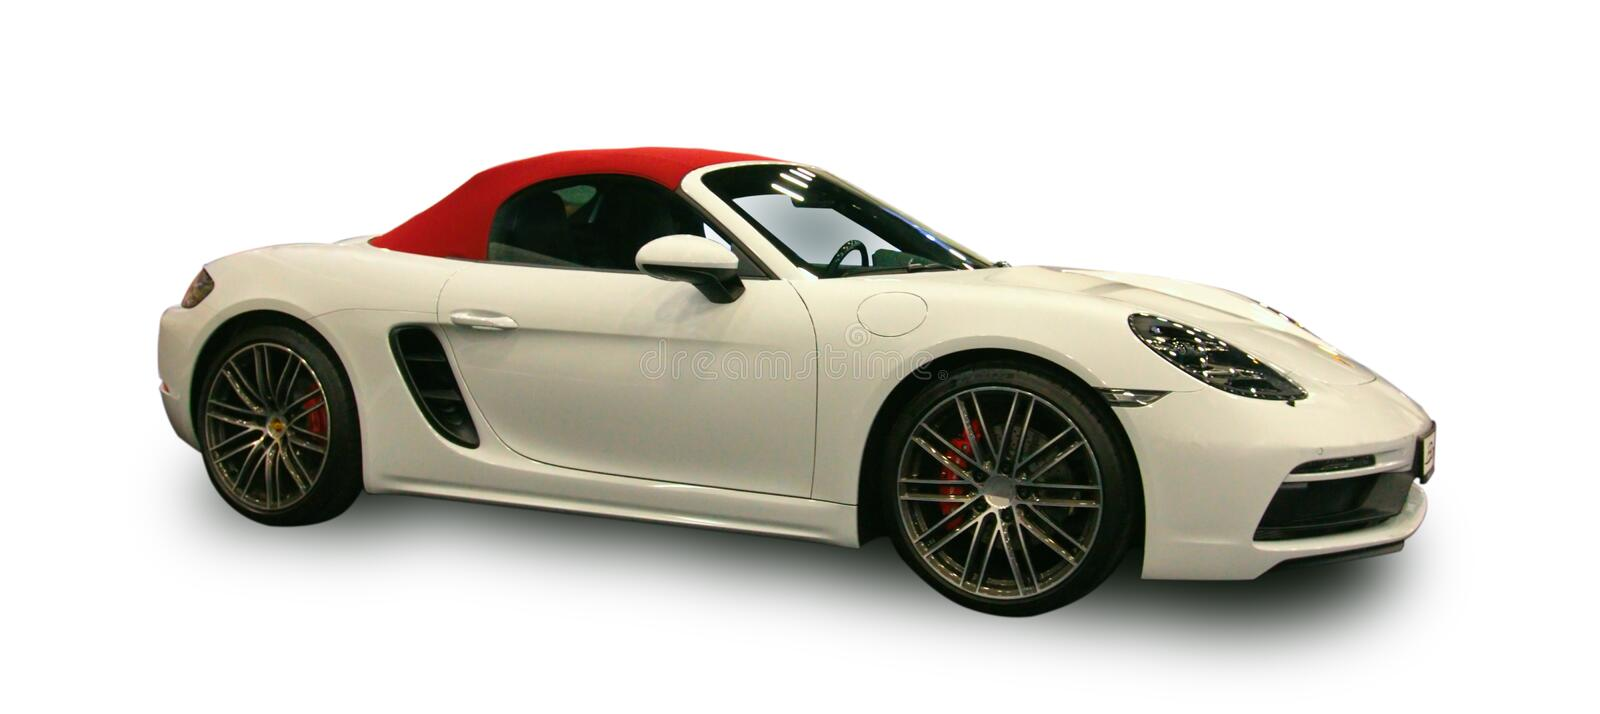 New German luxury sports car. White background. royalty free stock image